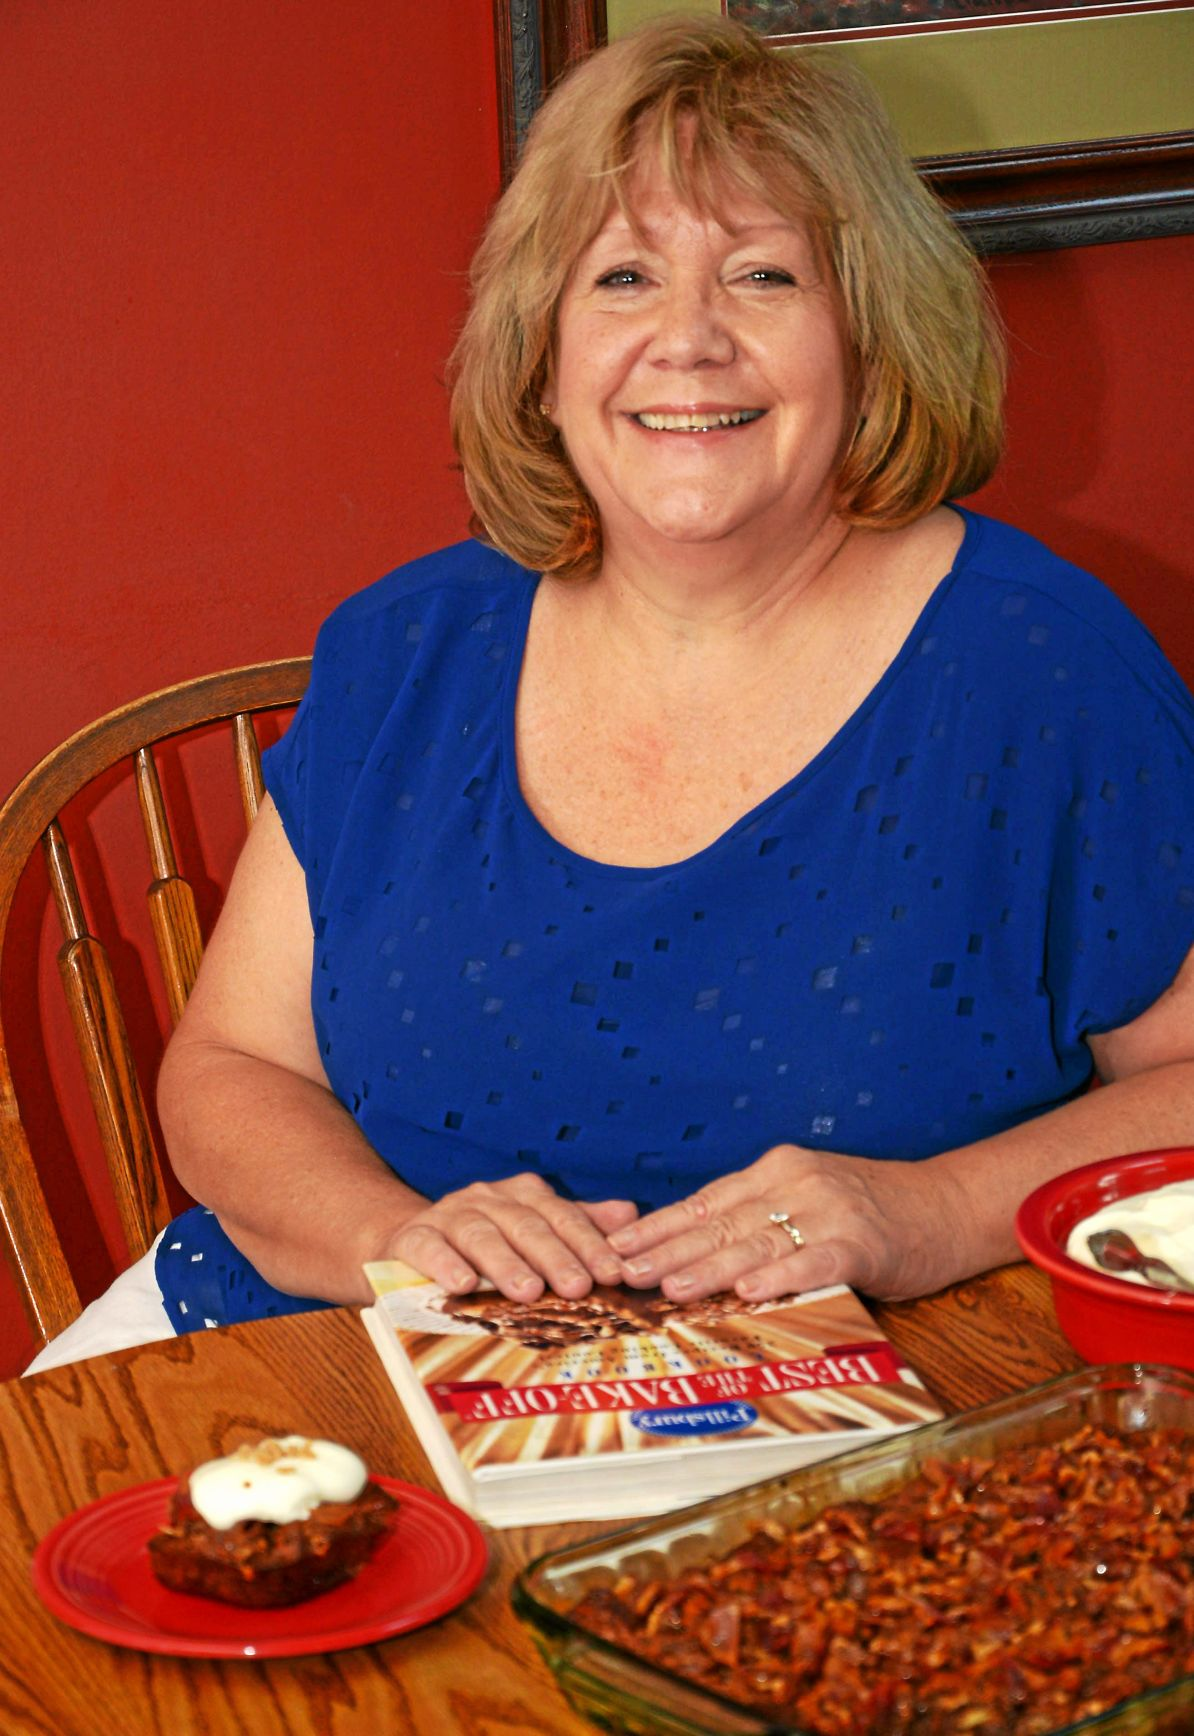 Upper Uwchlan woman Pillsbury finalist with Chocolate, Hazelnut-Toffee Bread Pudding with Candied Bacon